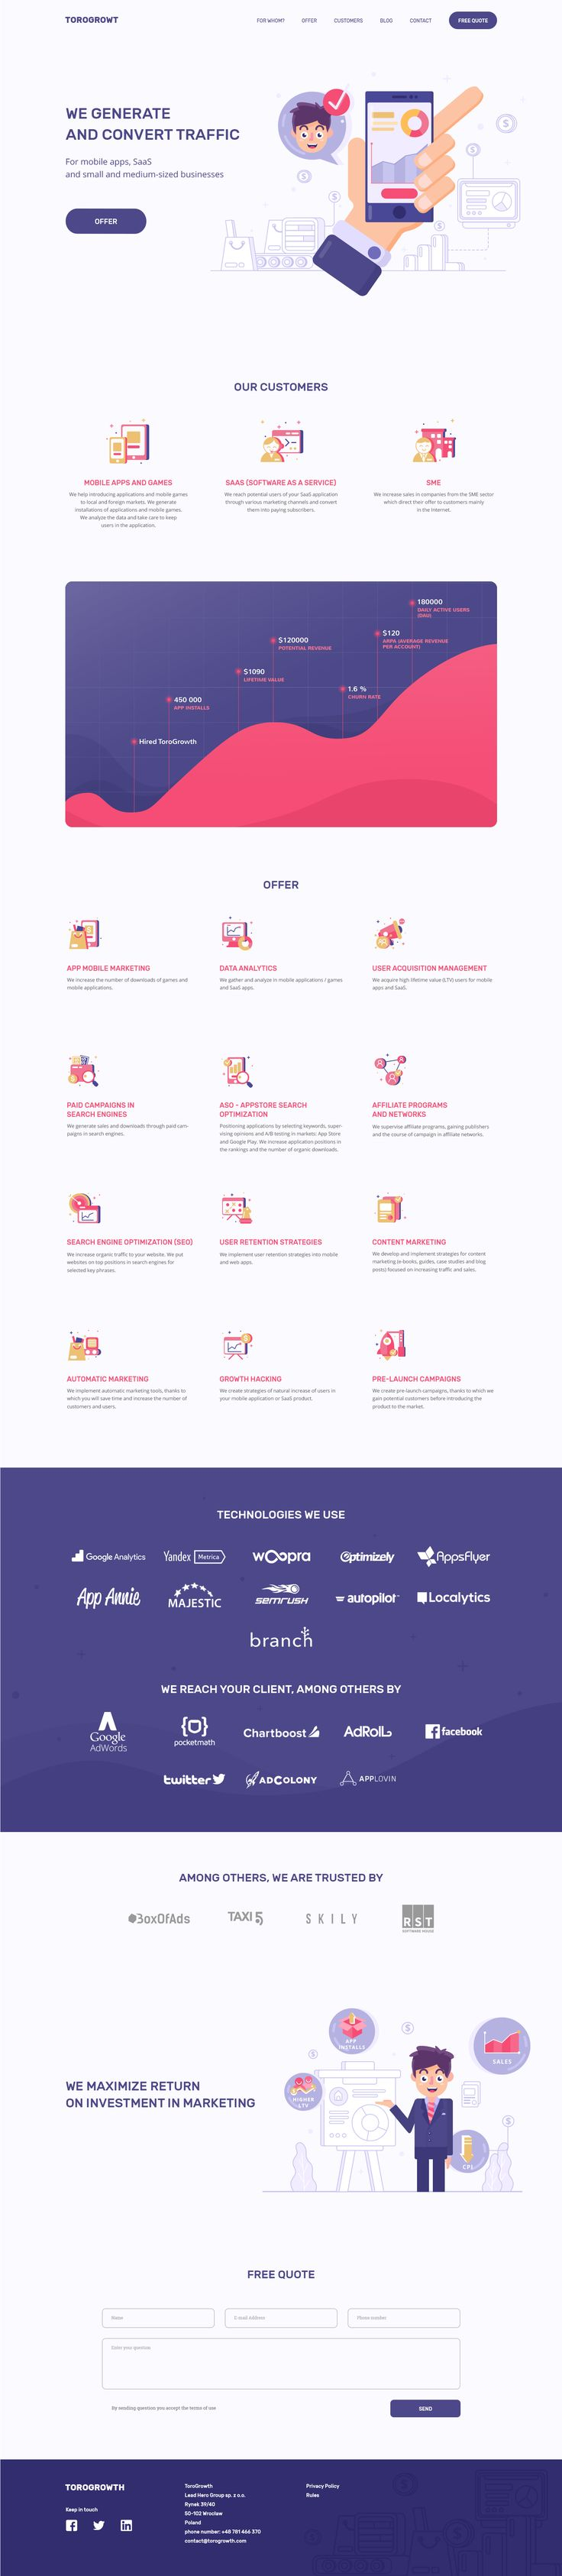 Landing page web lead hero test